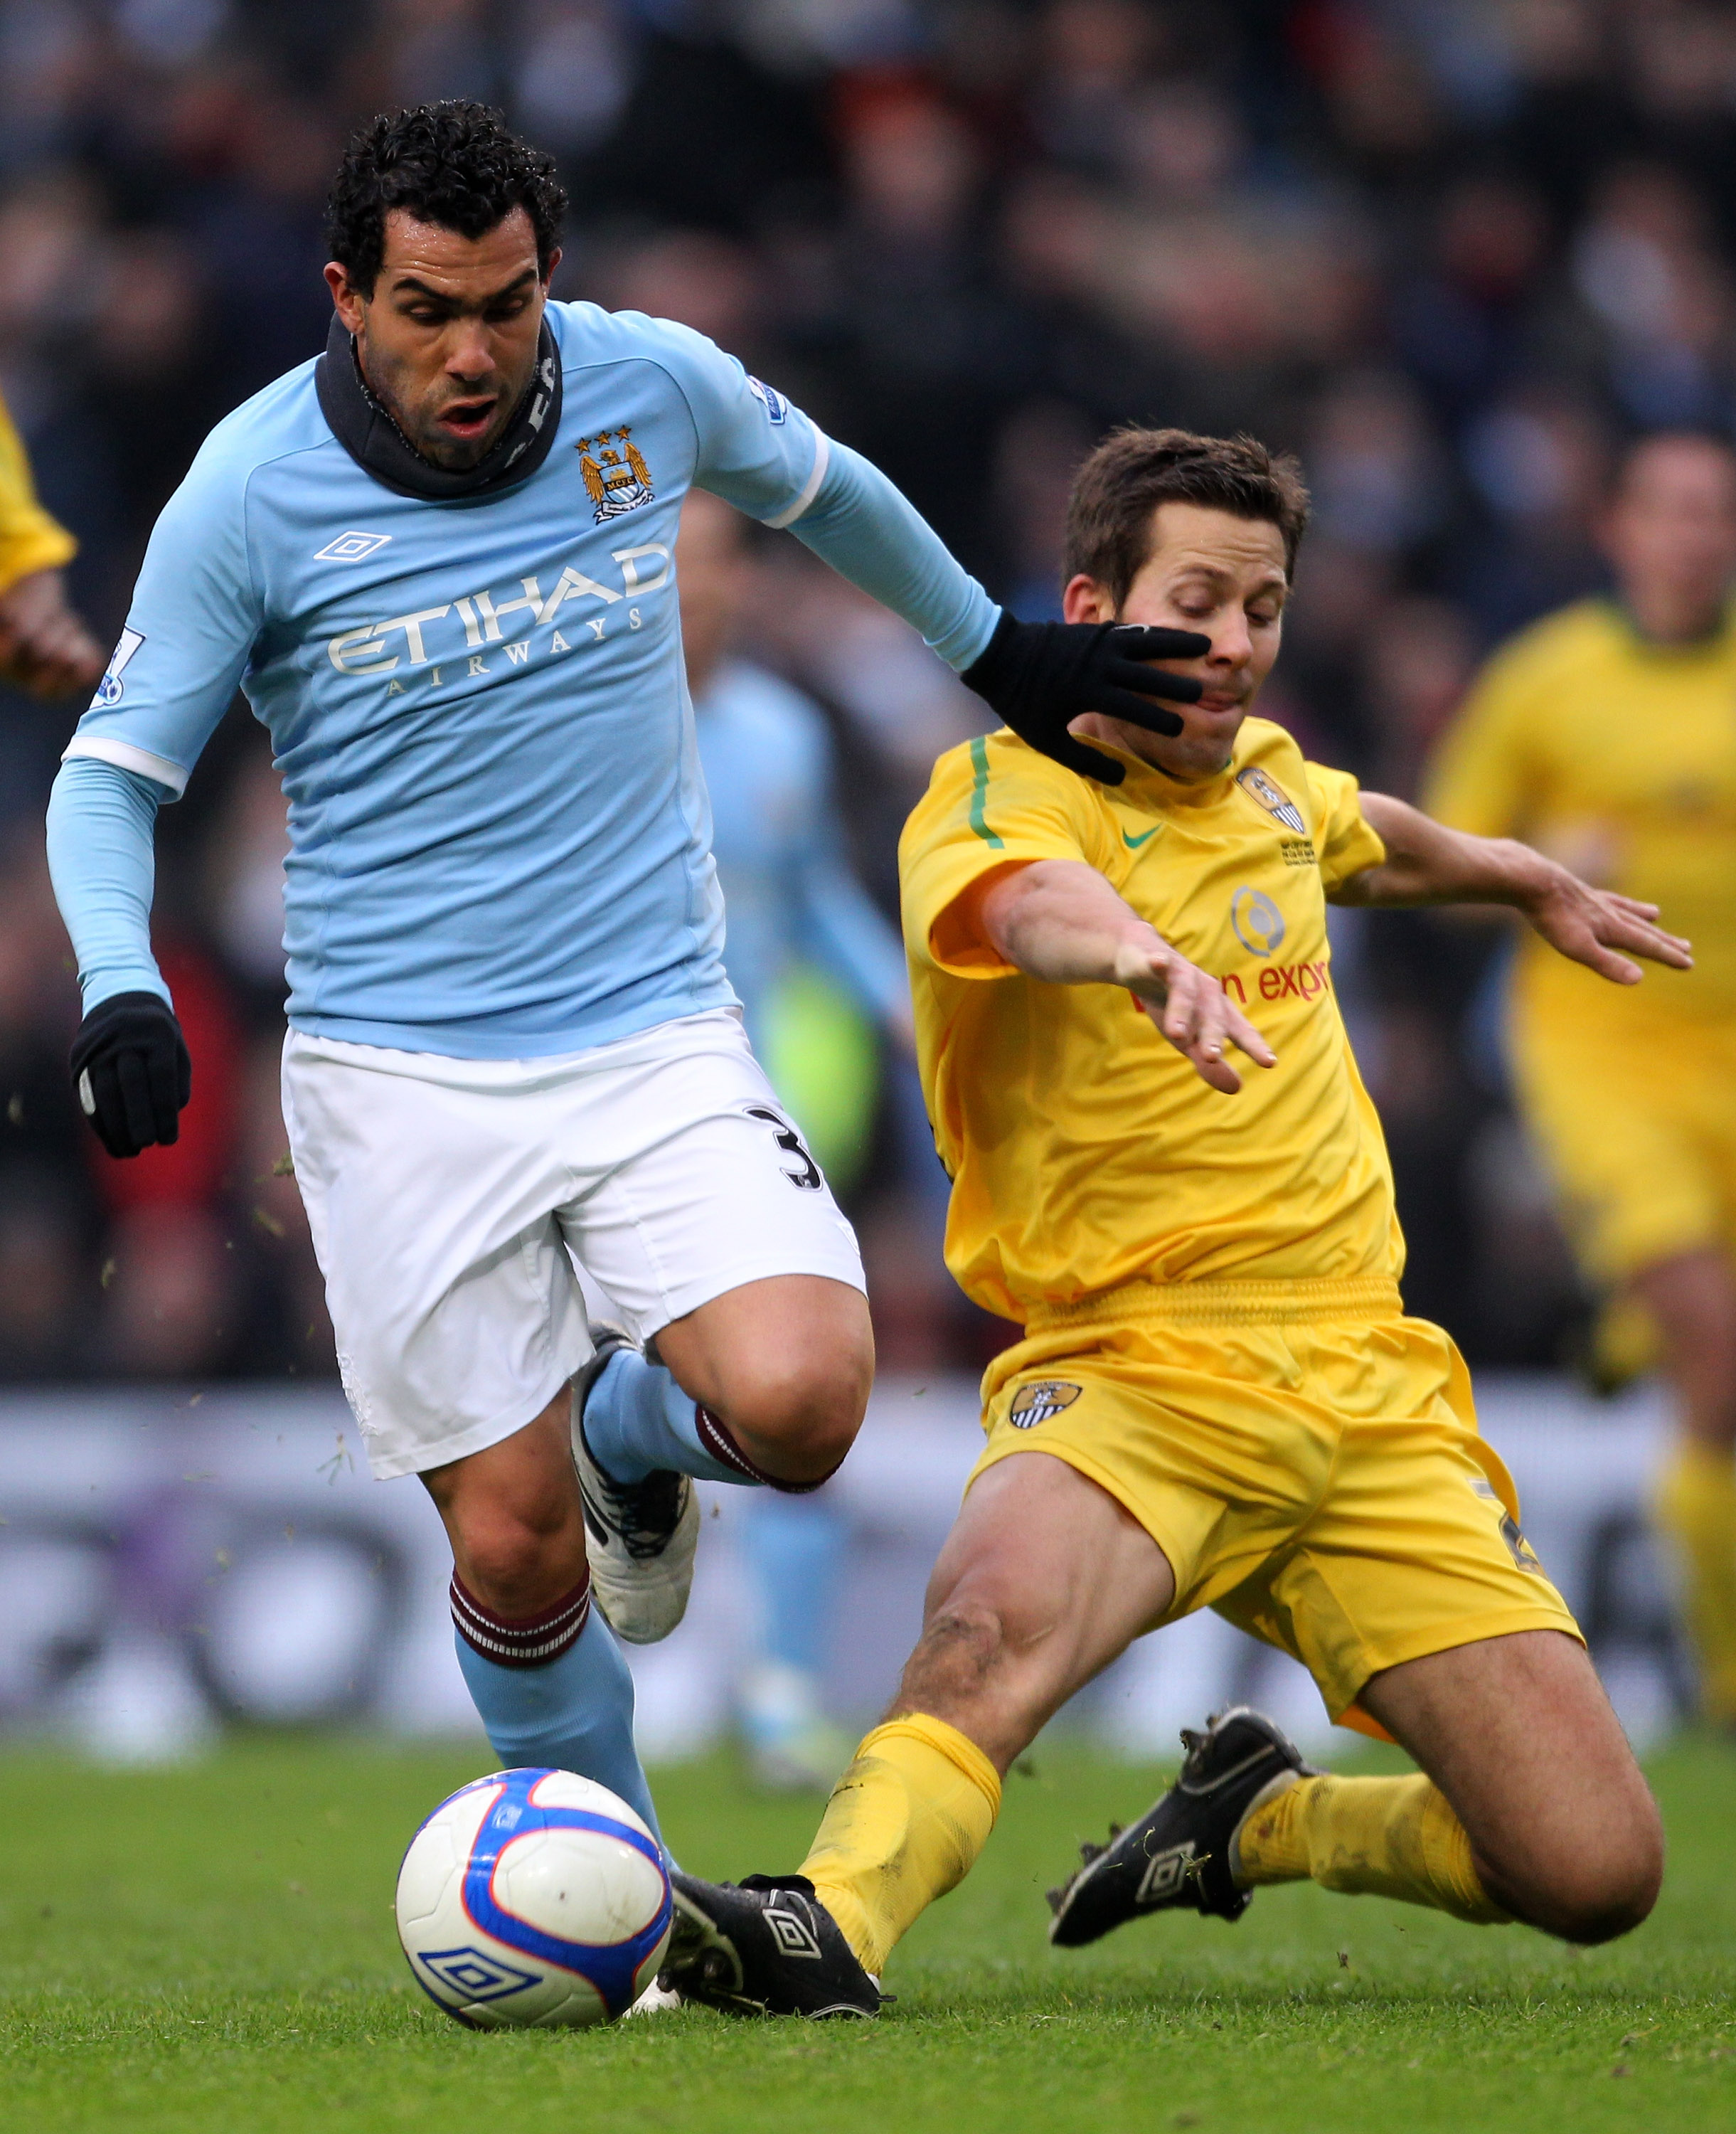 MANCHESTER, ENGLAND - FEBRUARY 20:  Carlos Tevez of Manchester City goes through on goal past Jon Harley of Nott County to score the third goal during the FA Cup sponsored by E.On 4th Round replay match between Manchester City and Notts County at City of